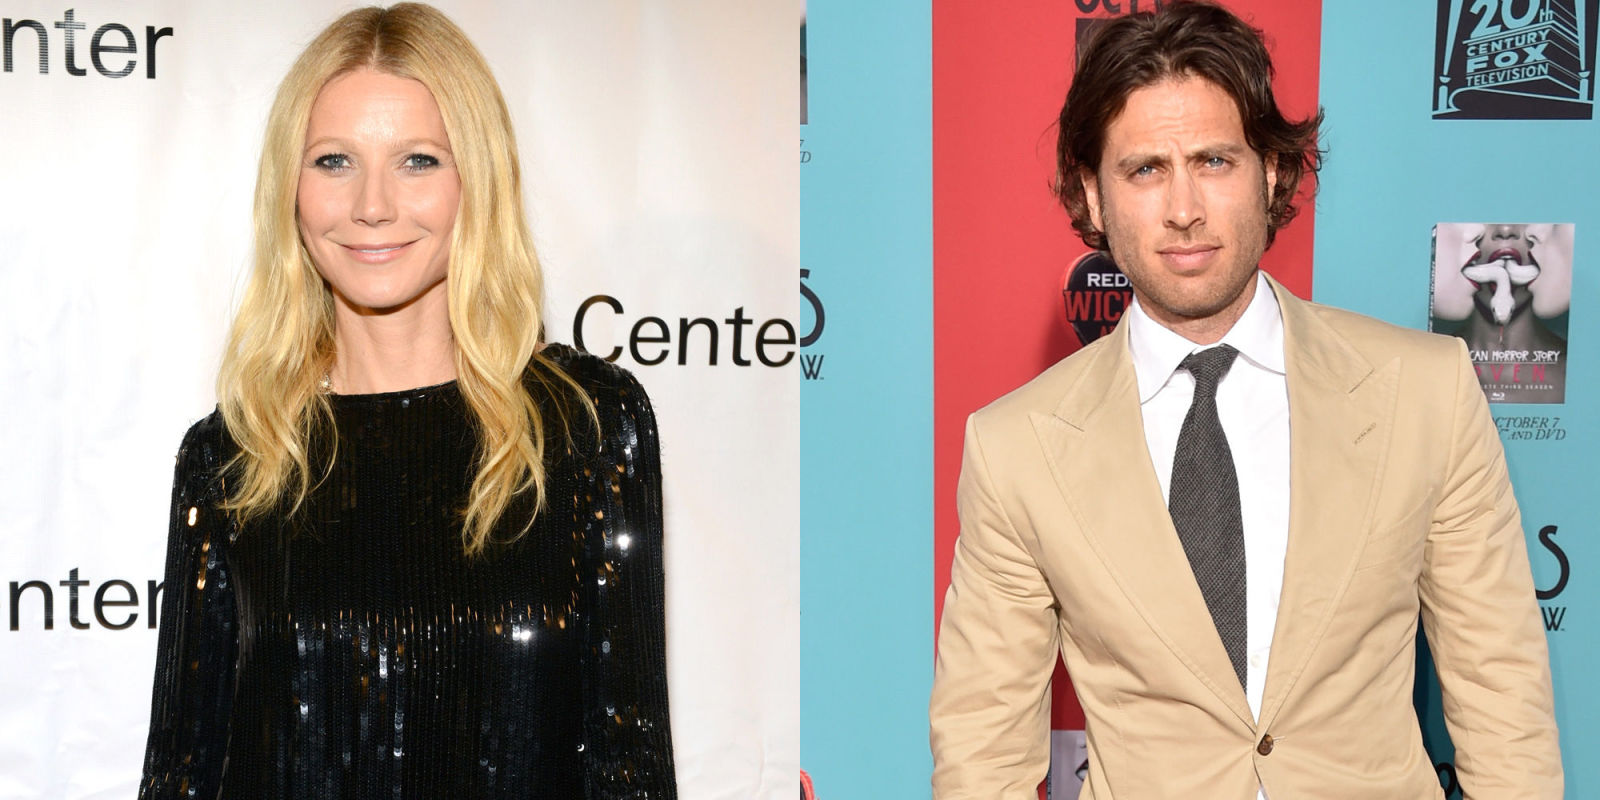 Gwyneth paltrow dating list